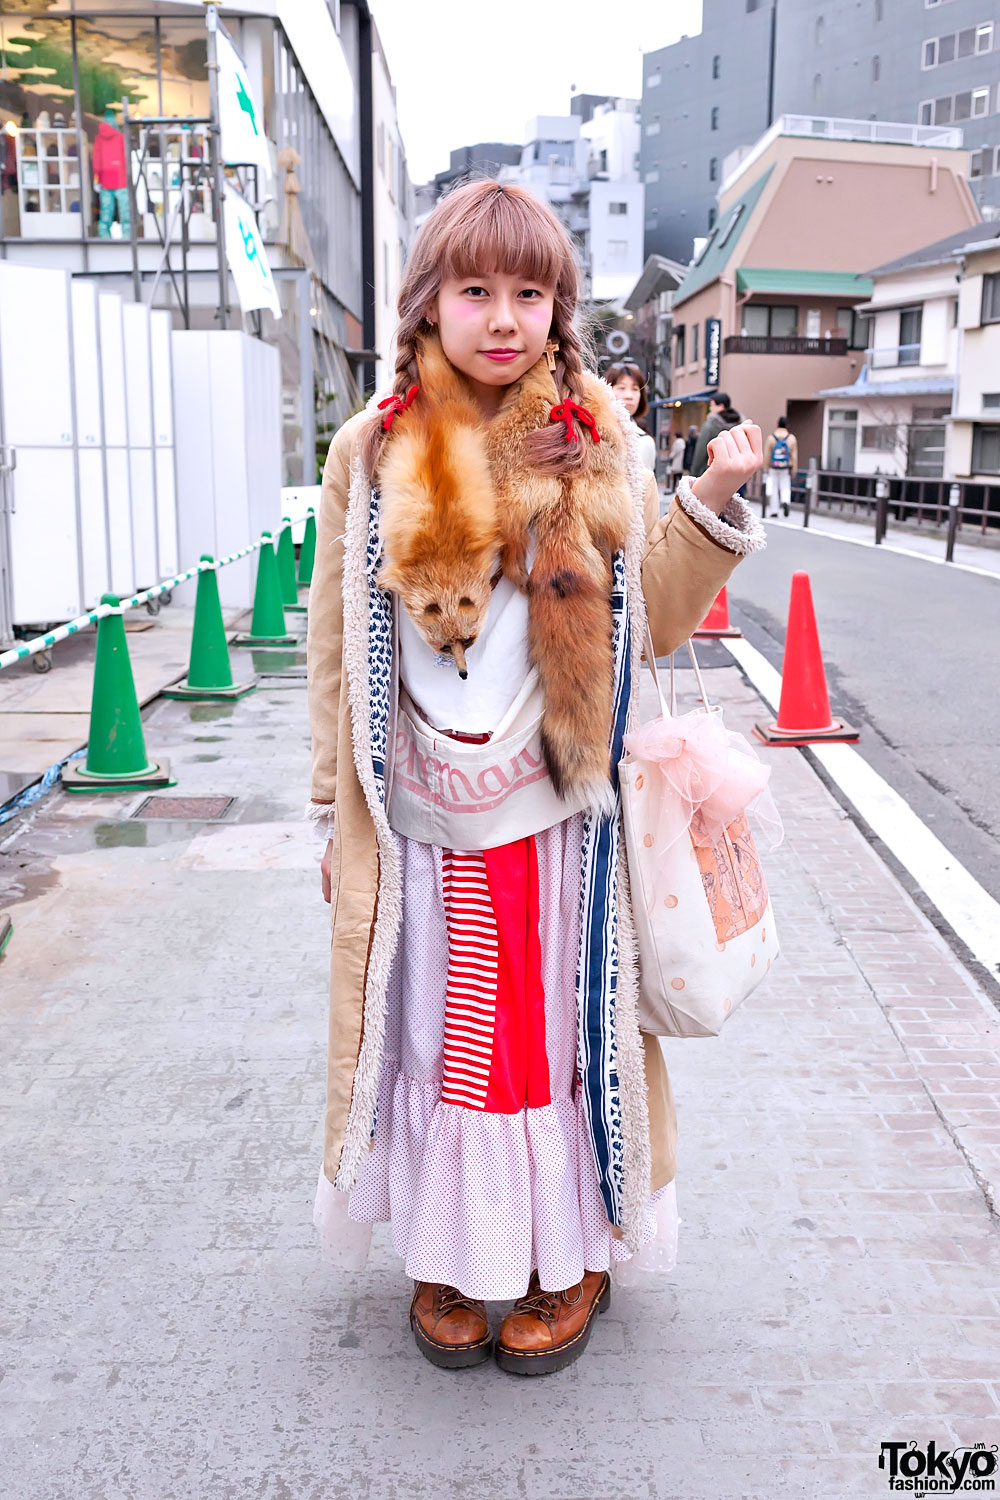 Japanese Girl 39 S Vintage Fashion Cute Braids On Cat Street